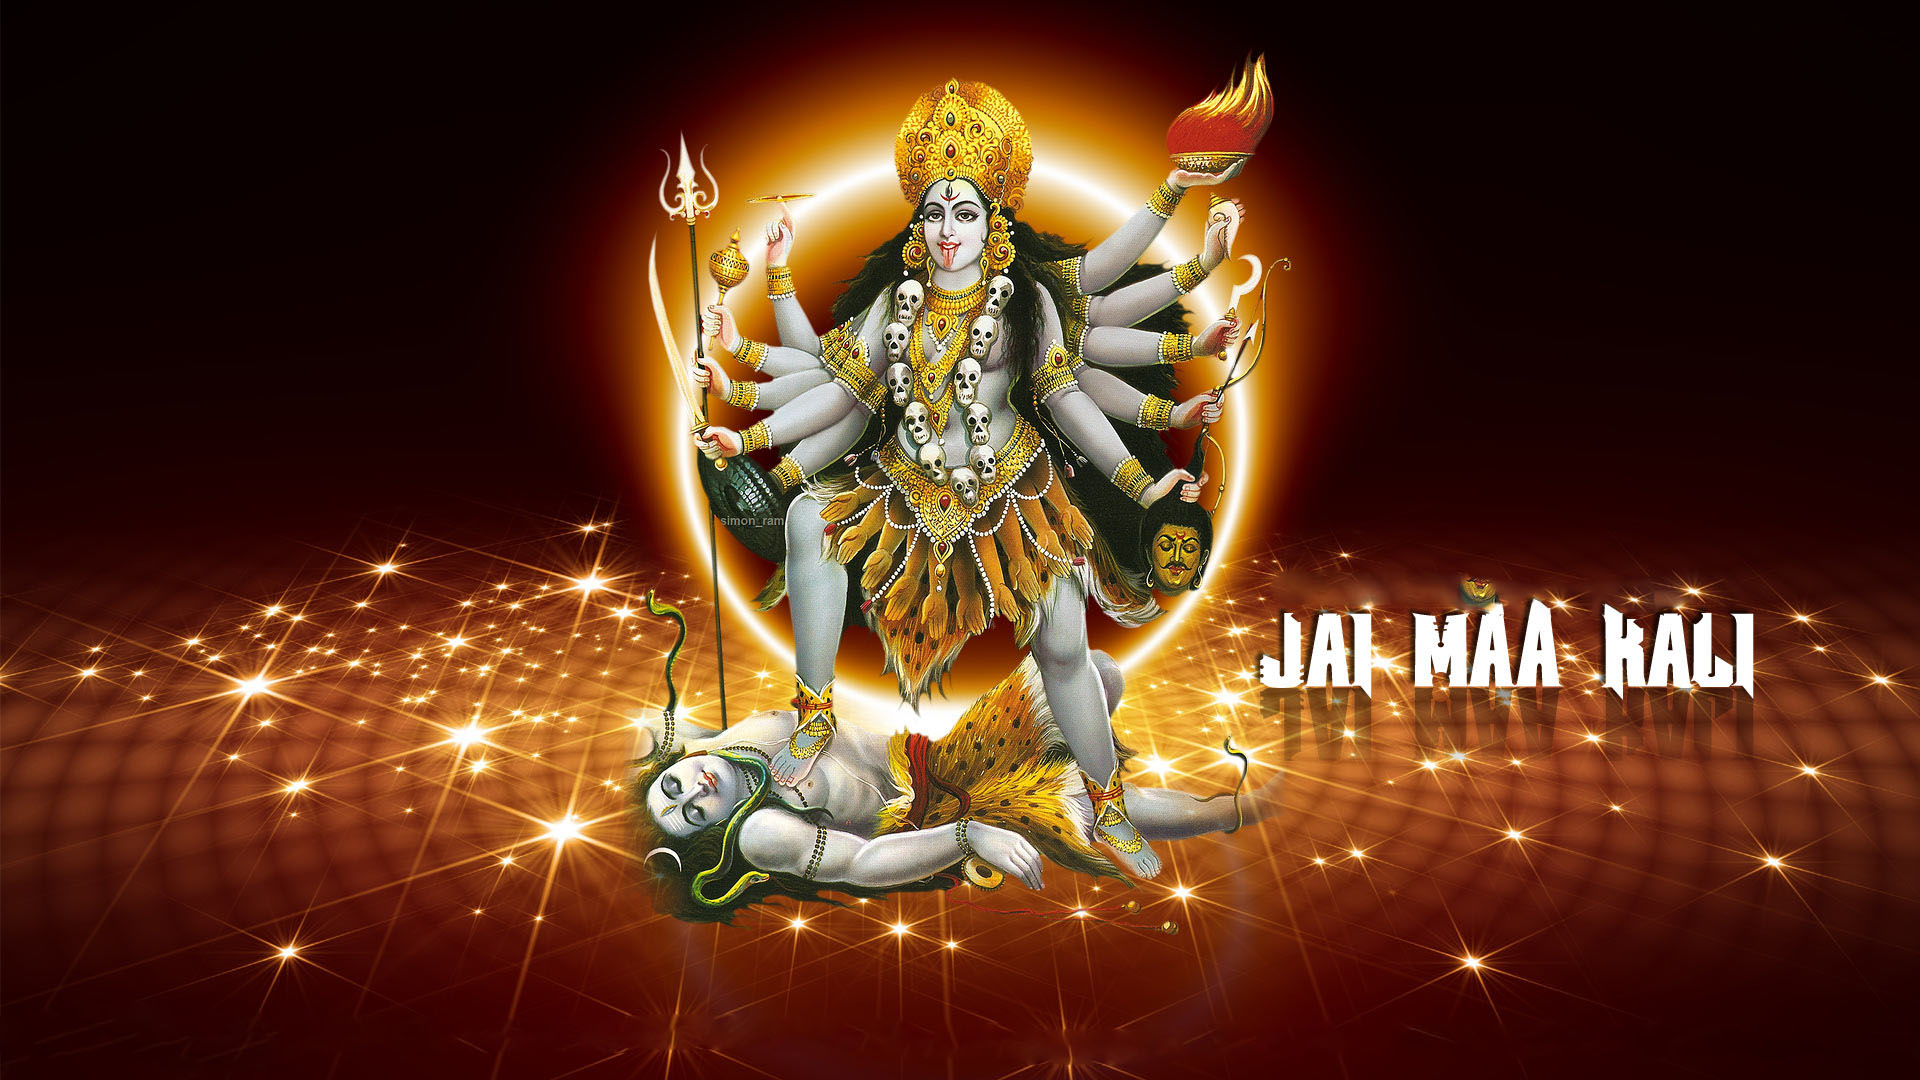 Maa Kali 3d Hd Wallpaper